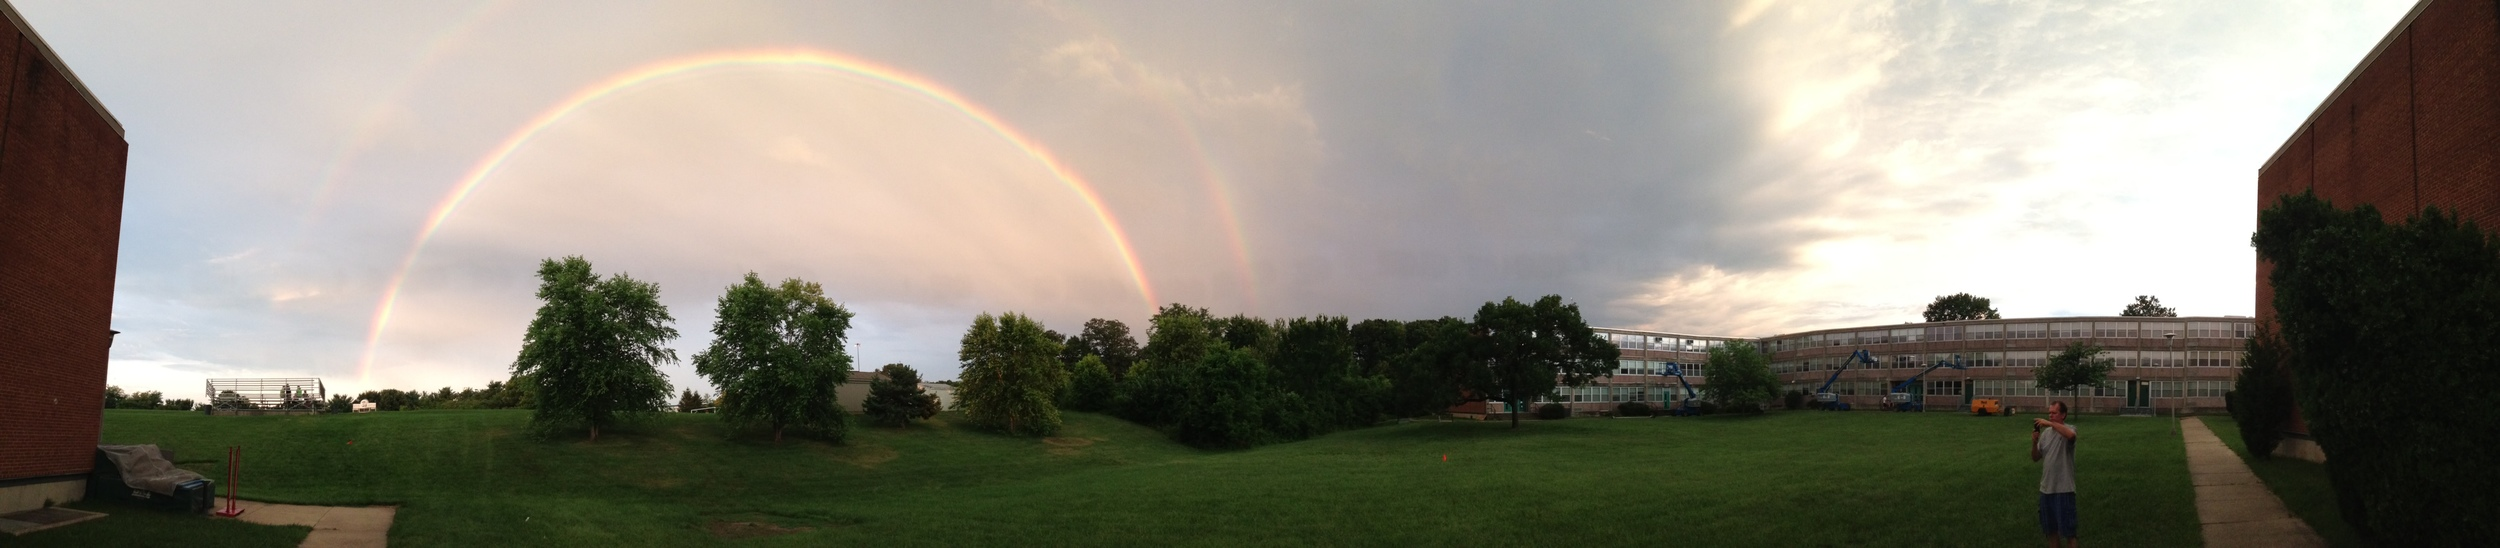 A rainbow on our final evening at Seton Keough.